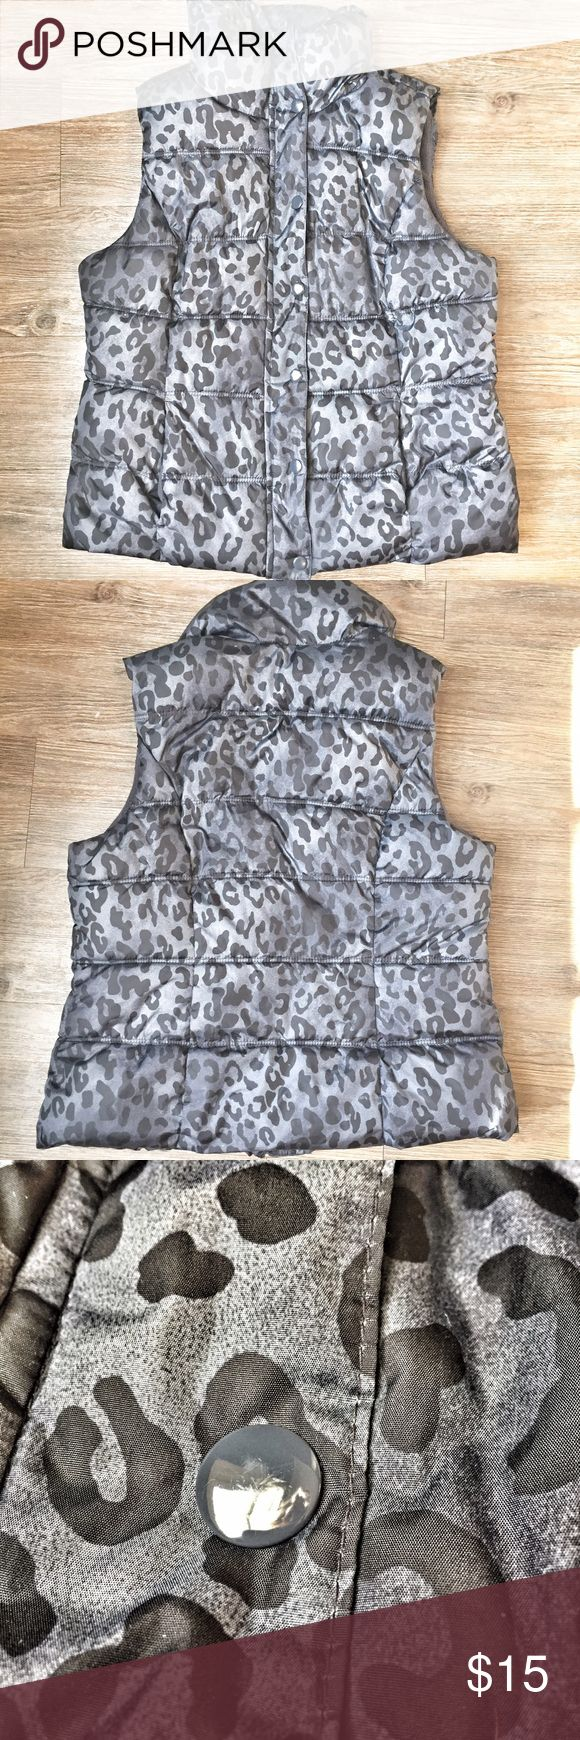 Old Navy fleece lined Puffy Vest Animal Print M Old Navy black cheetah print fleece lined puffy vest. Size Med. No rips tears or stains. Some very minor scratching on buttons noted in pic. Zipper and button closure. BUNDLE AND SAVE! ❤ Old Navy Jackets & Coats Vests